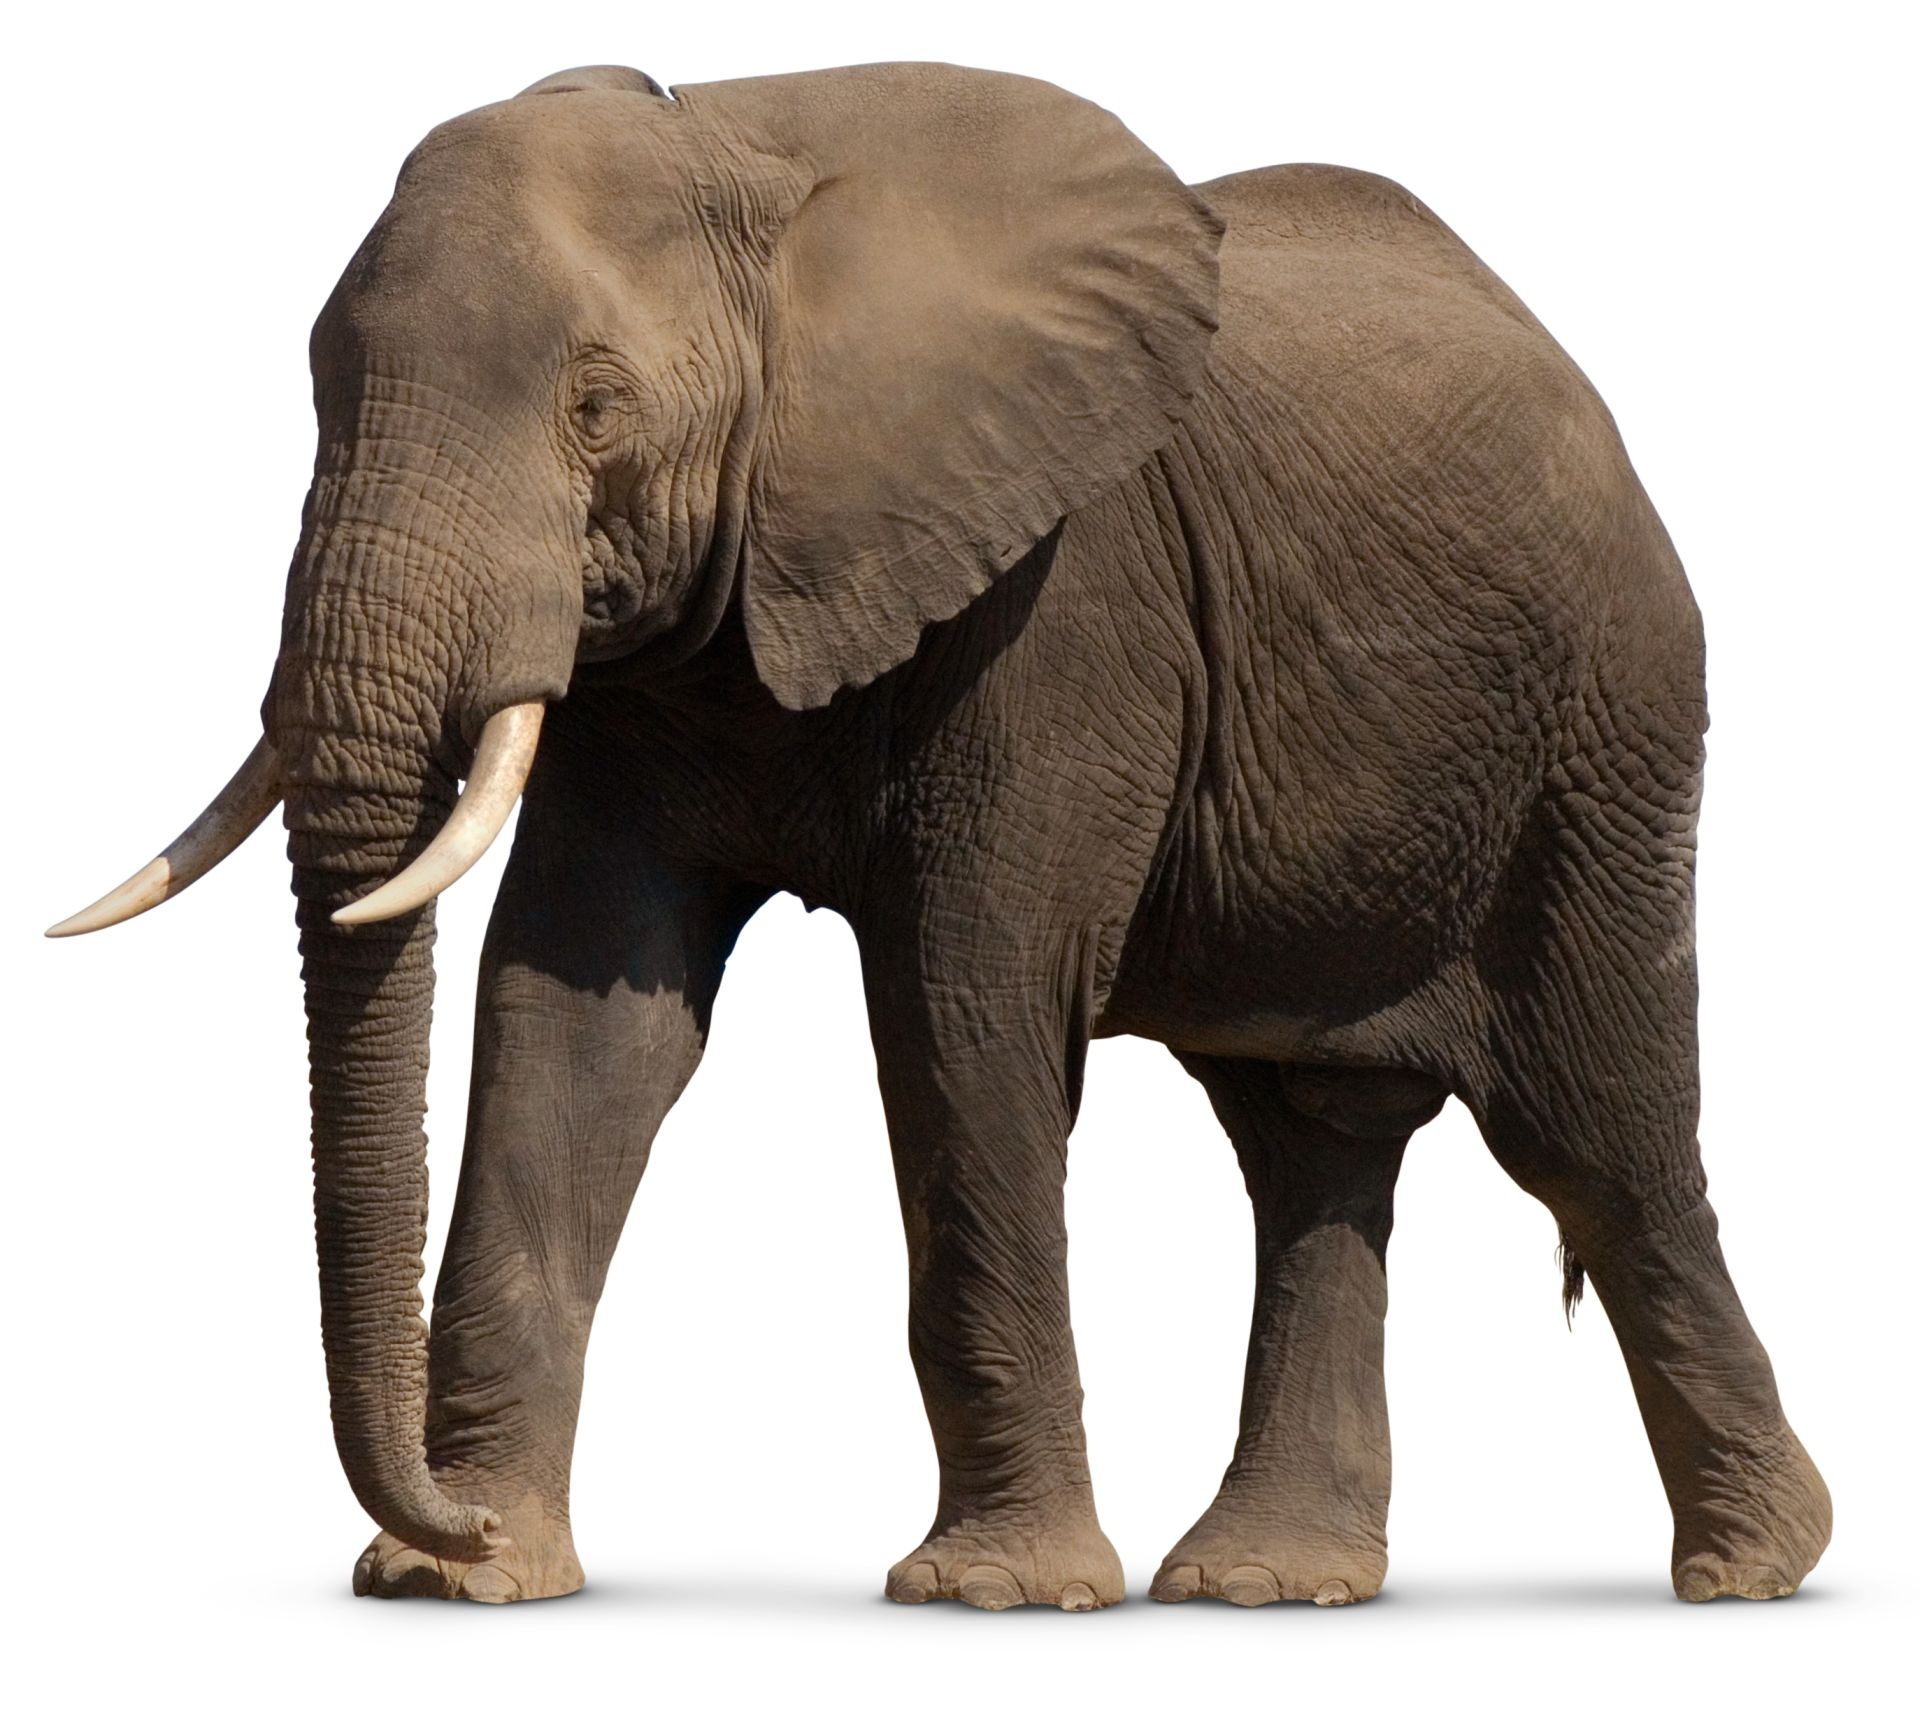 Essay on Elephant